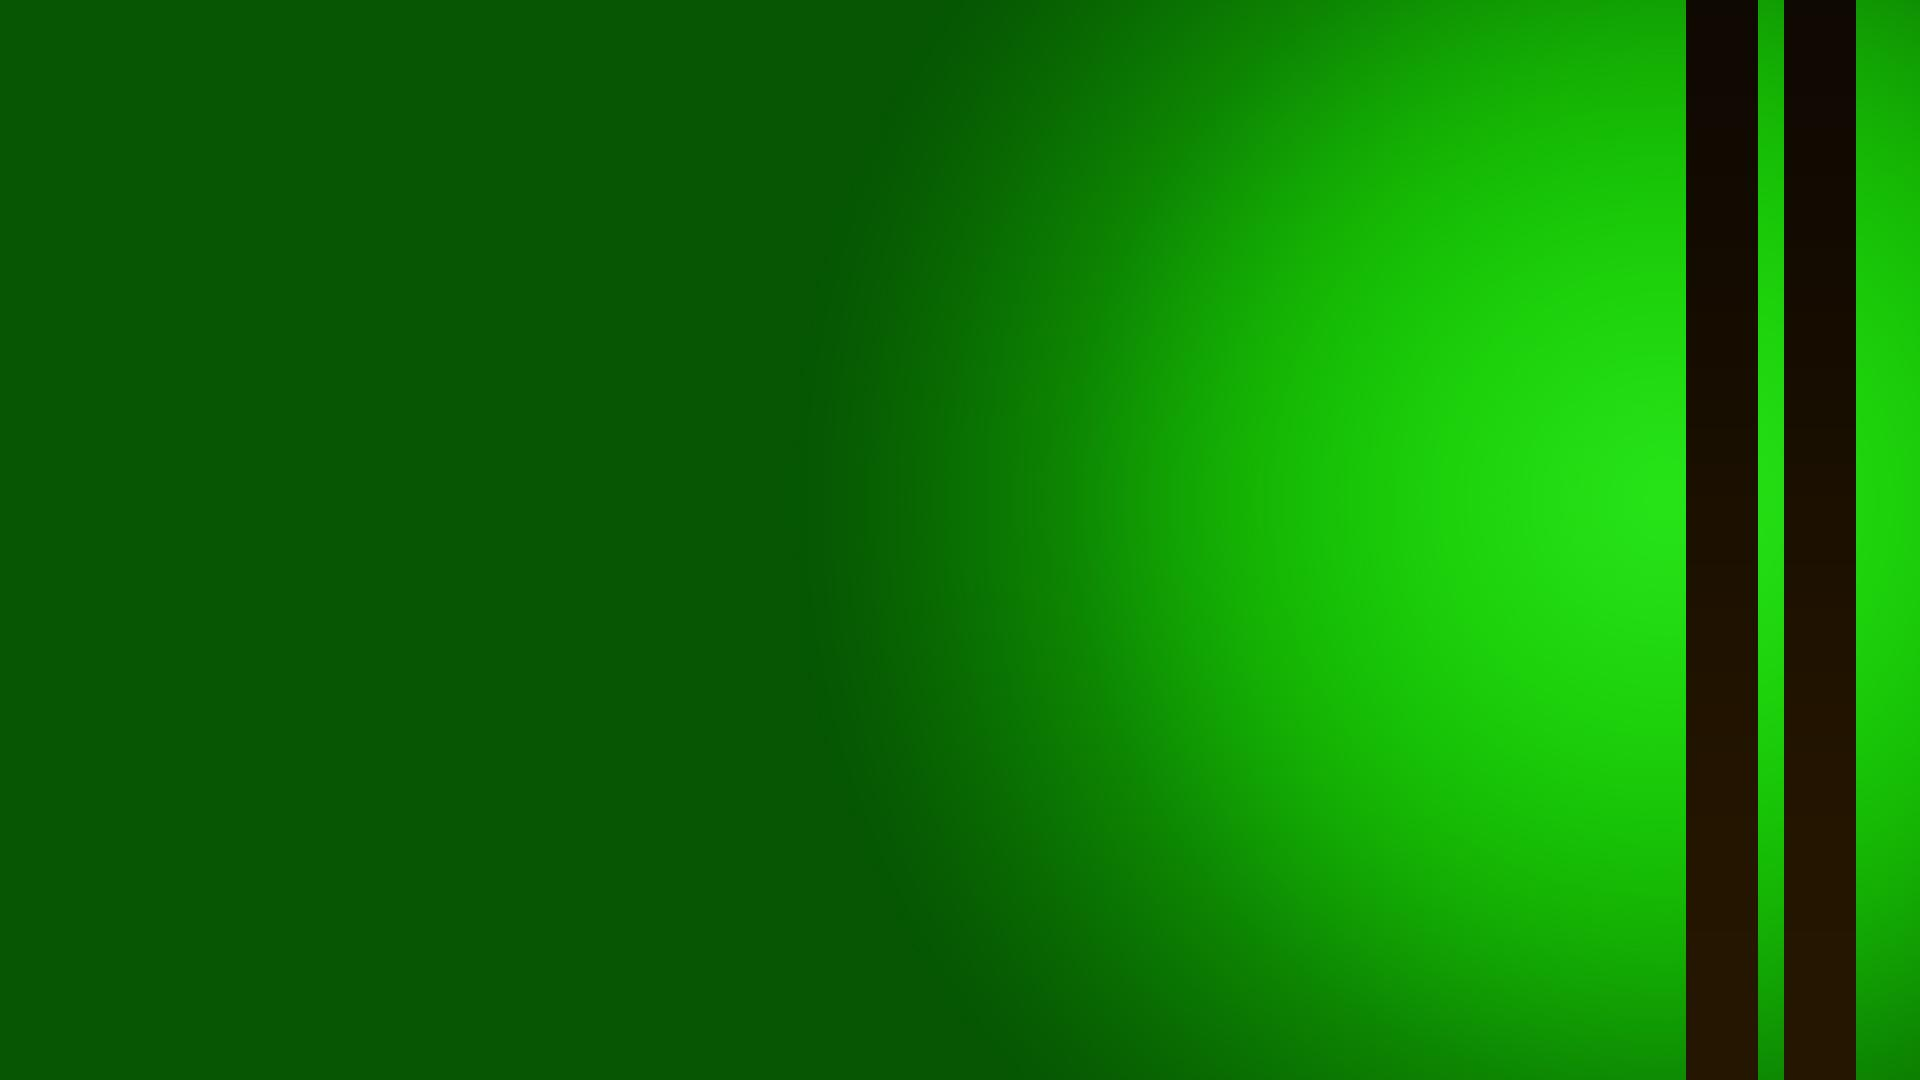 Cute Lime Green Wallpaper Download Bright Lime Green Wallpaper Gallery